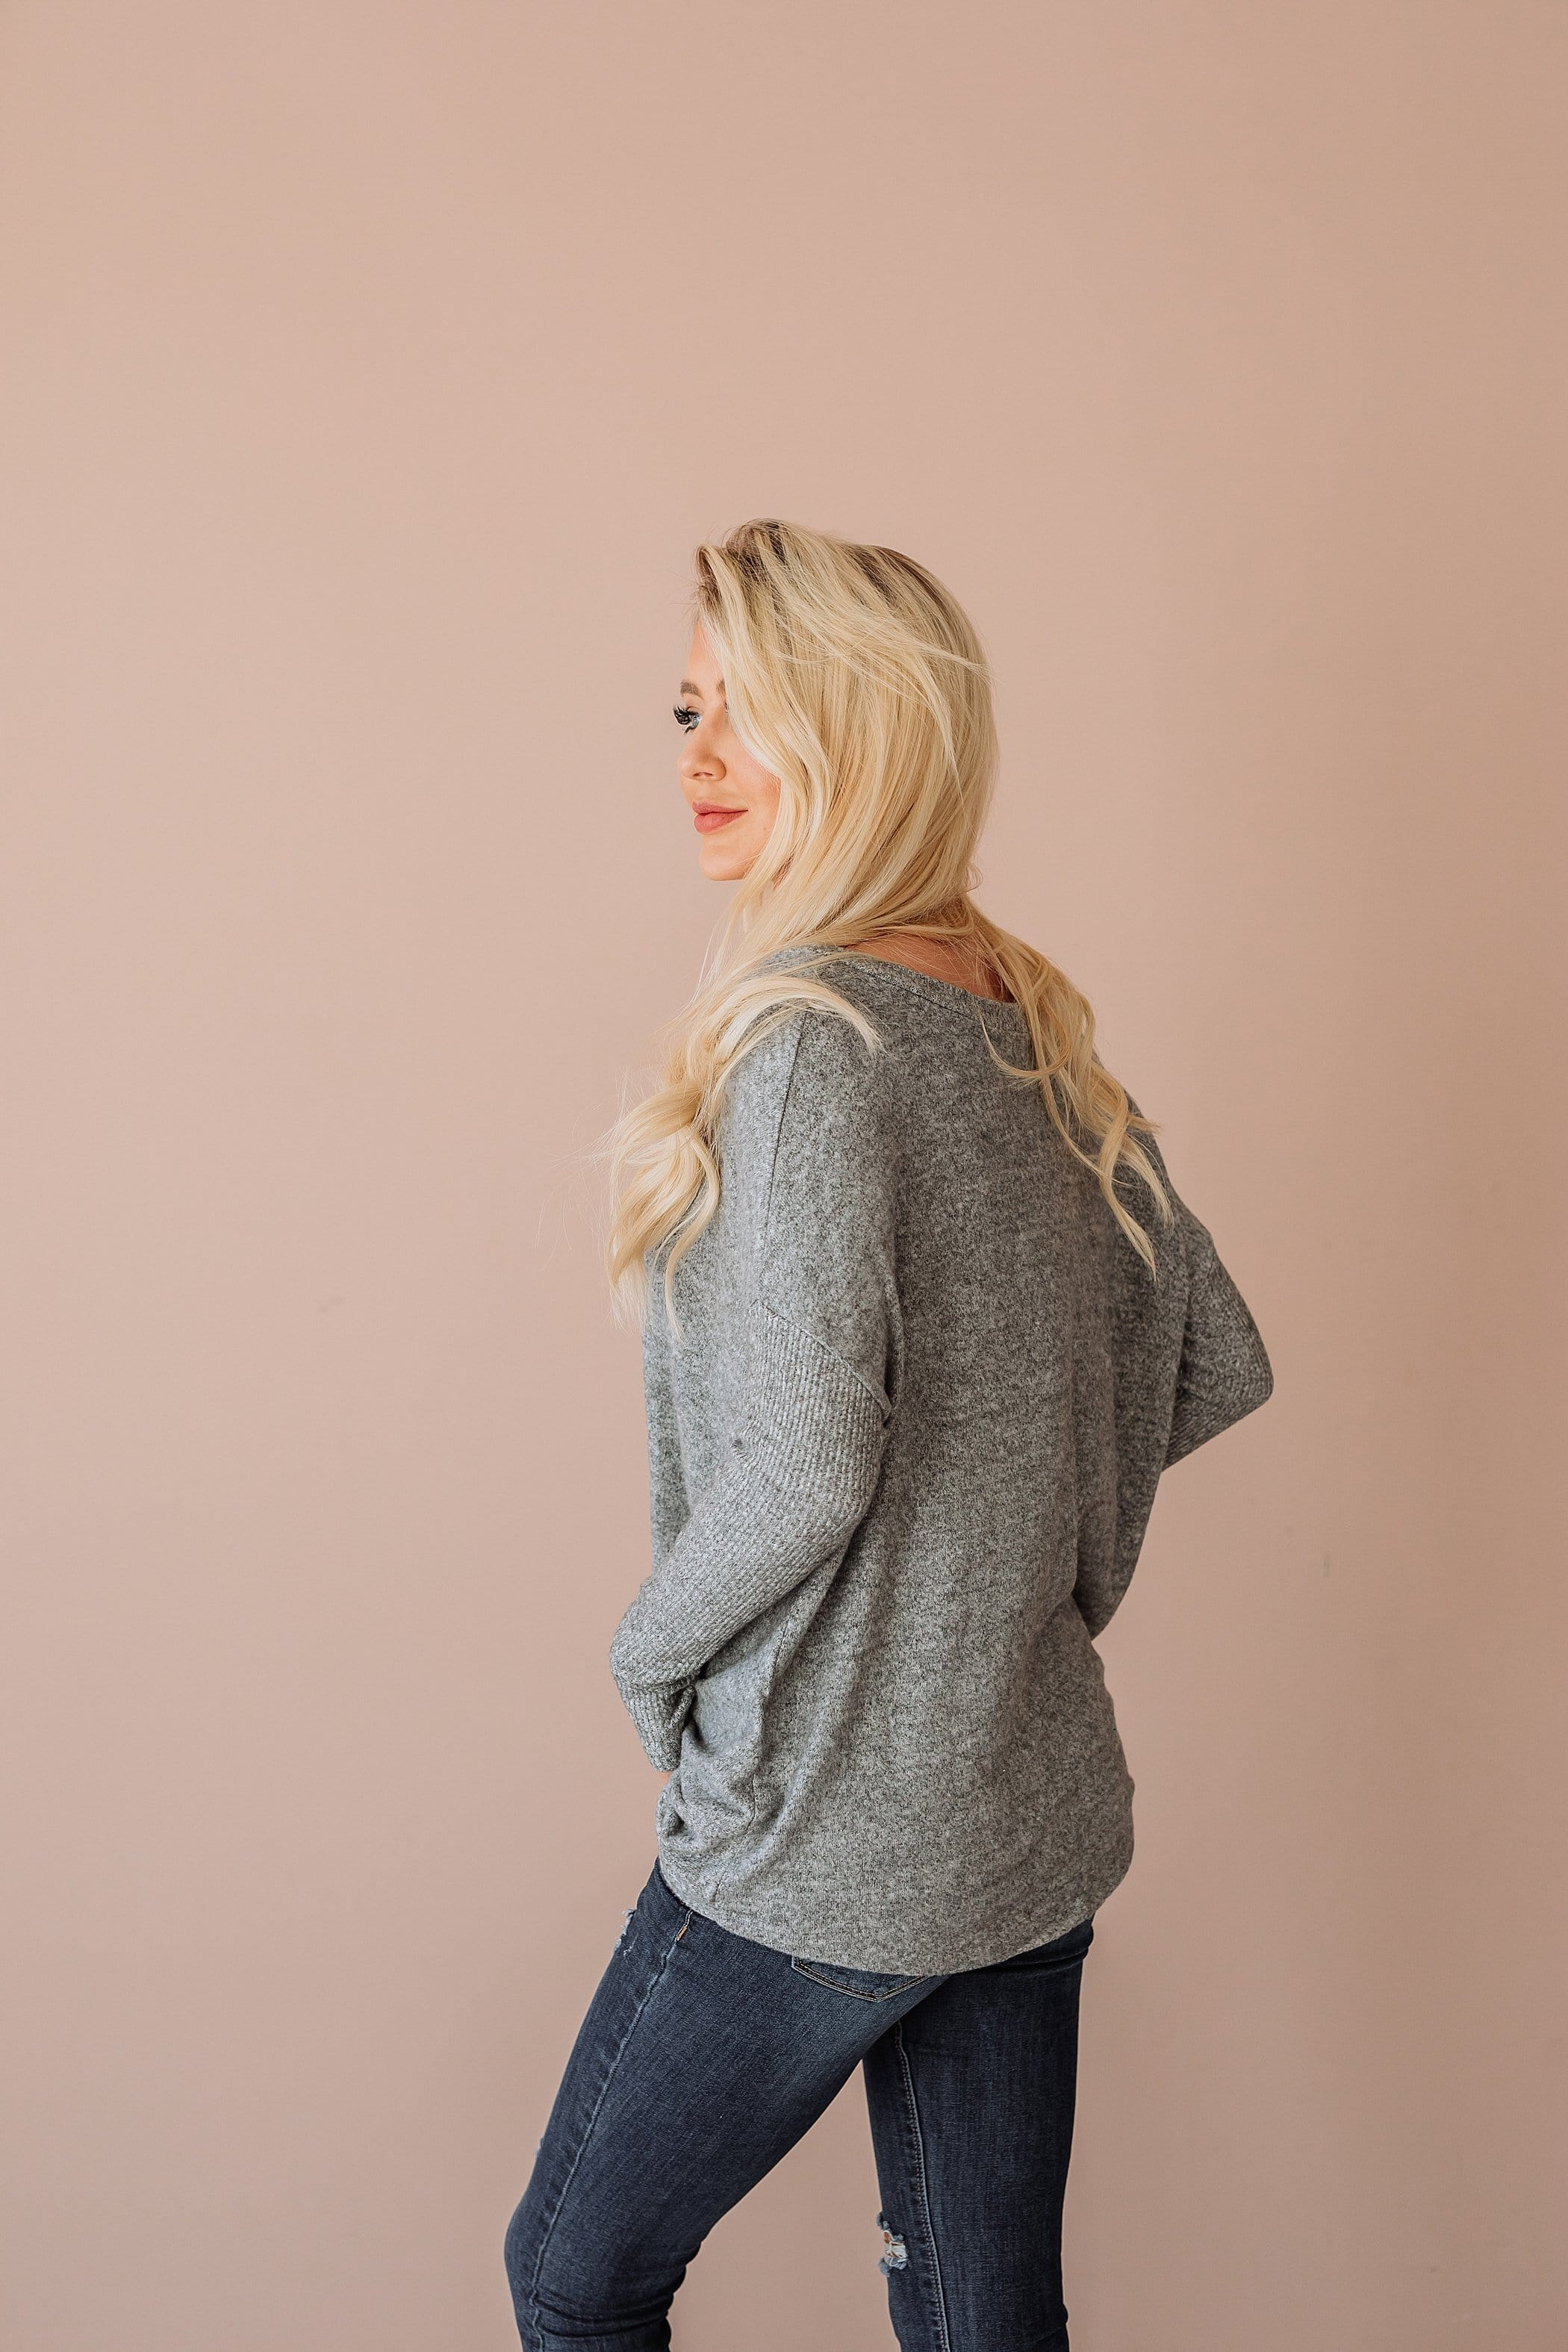 The Steele Twist Top in Heather Grey and Olive